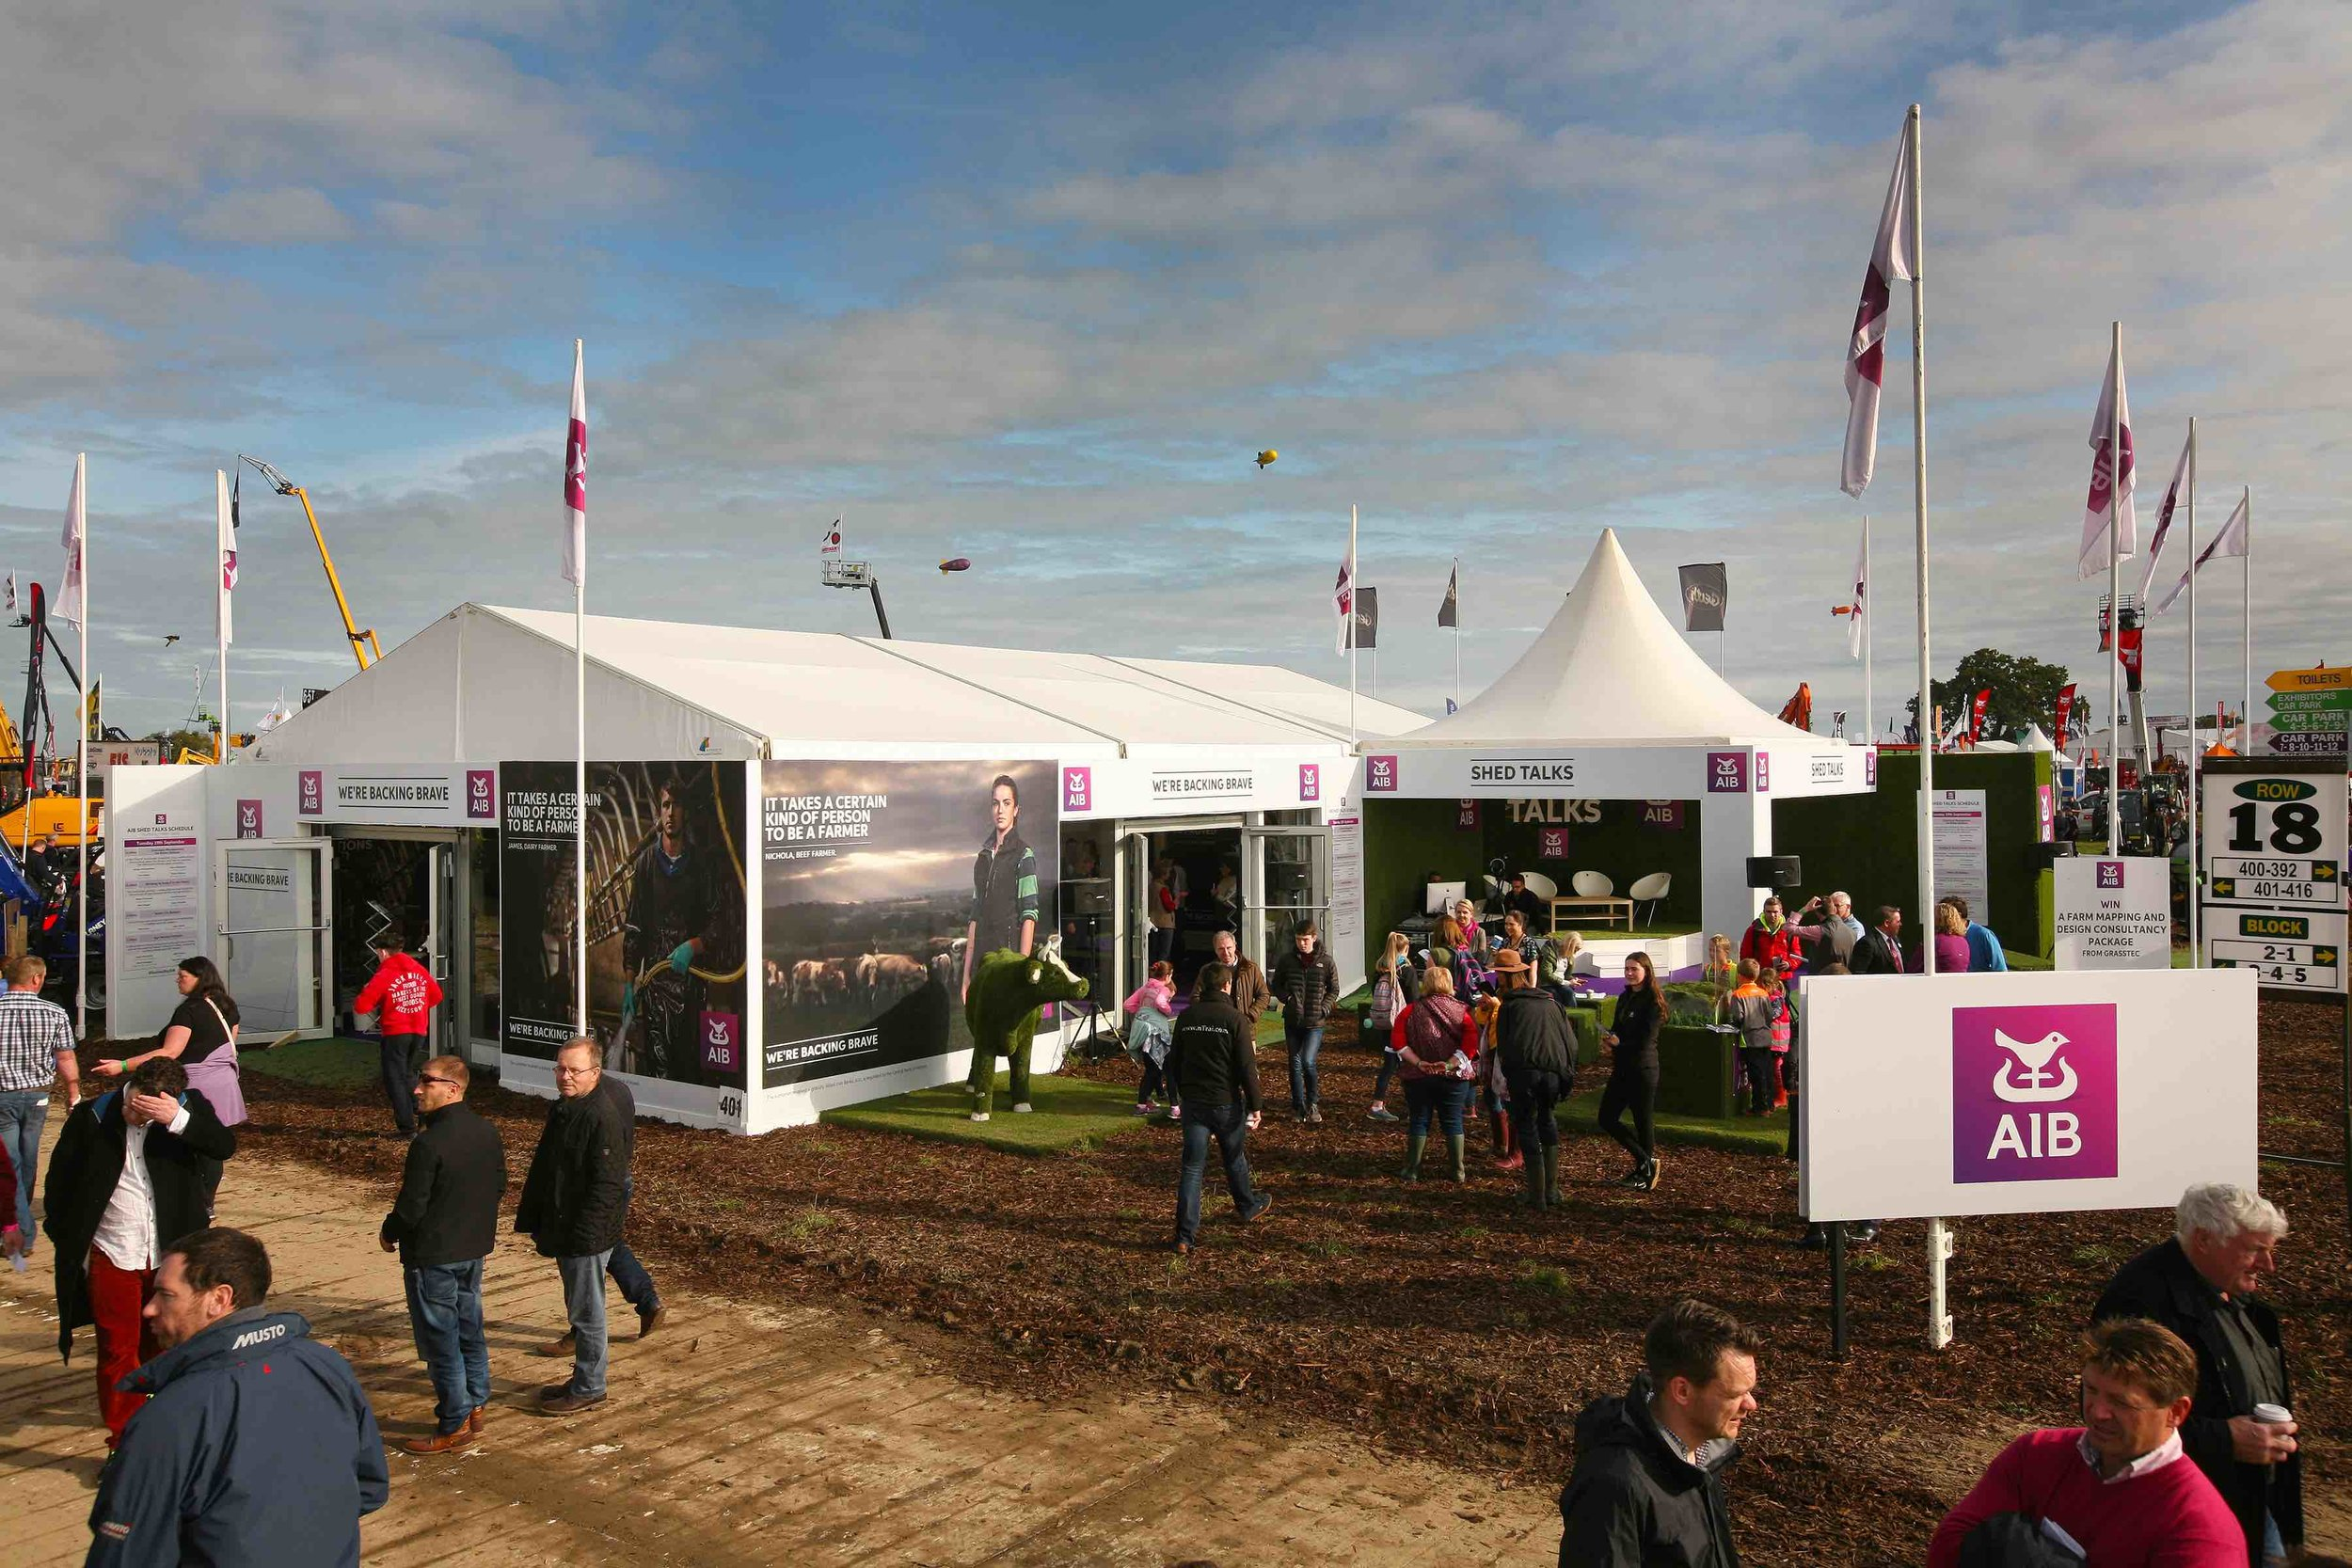 AIB Exhibition Stand at The National Ploughing Championships 2017